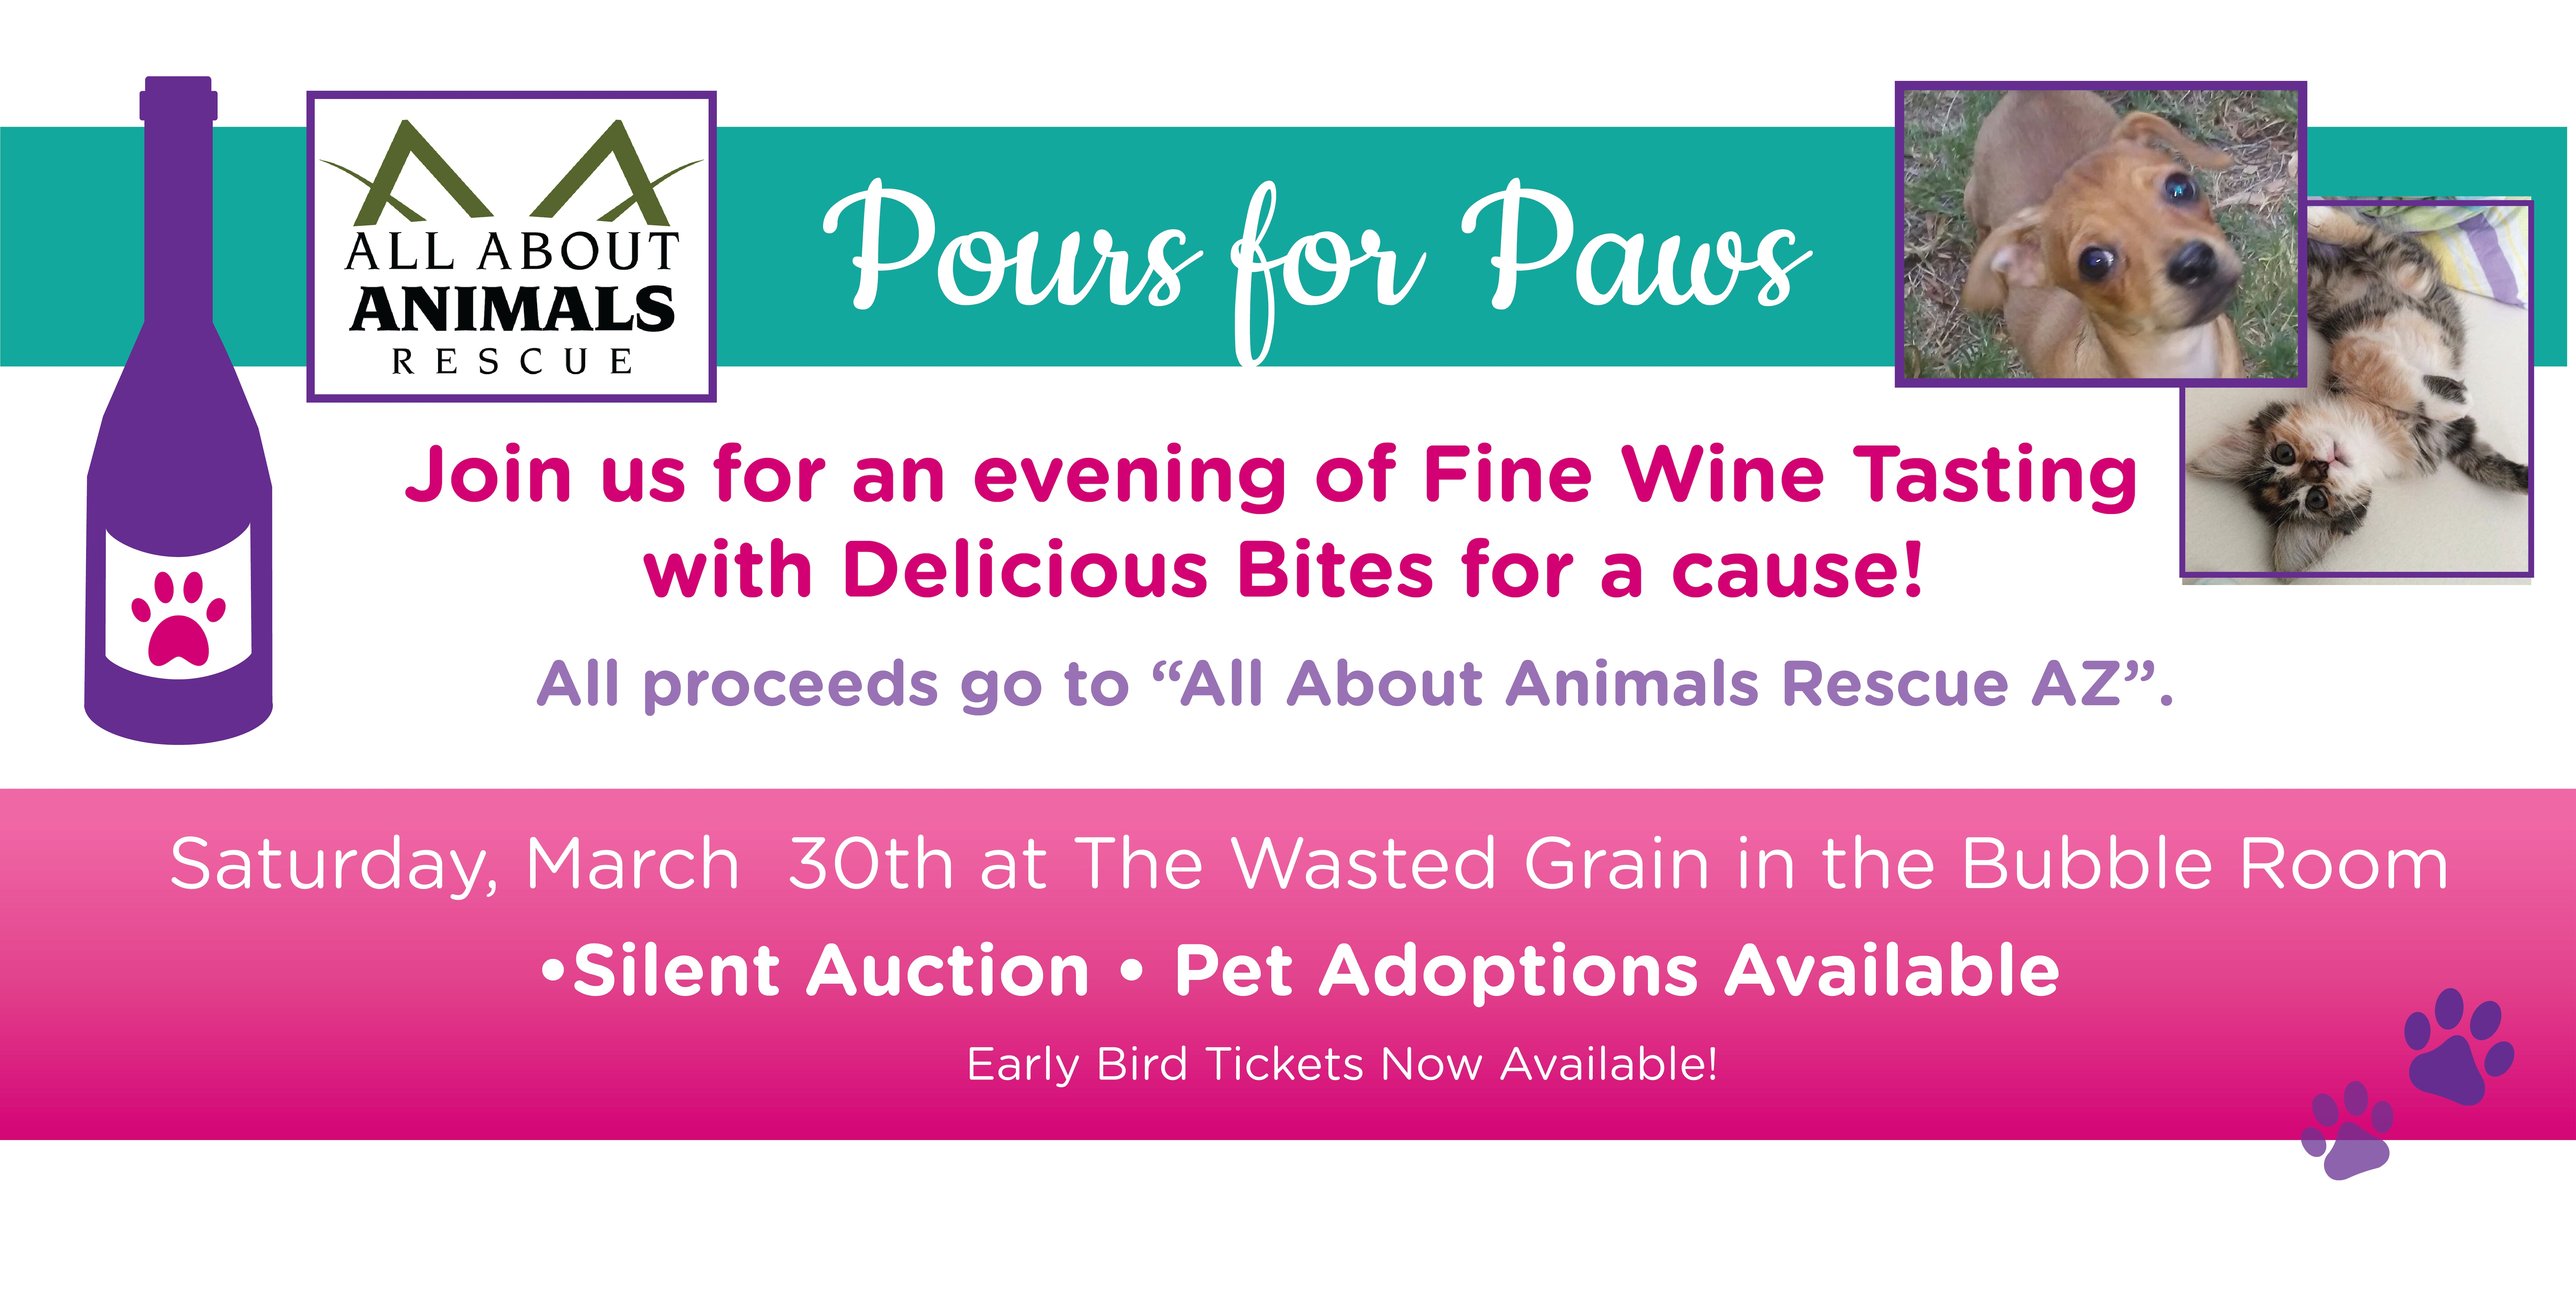 Pours for Paws -An evening of Wine Tasting supporting All About Animals Rescue AZ